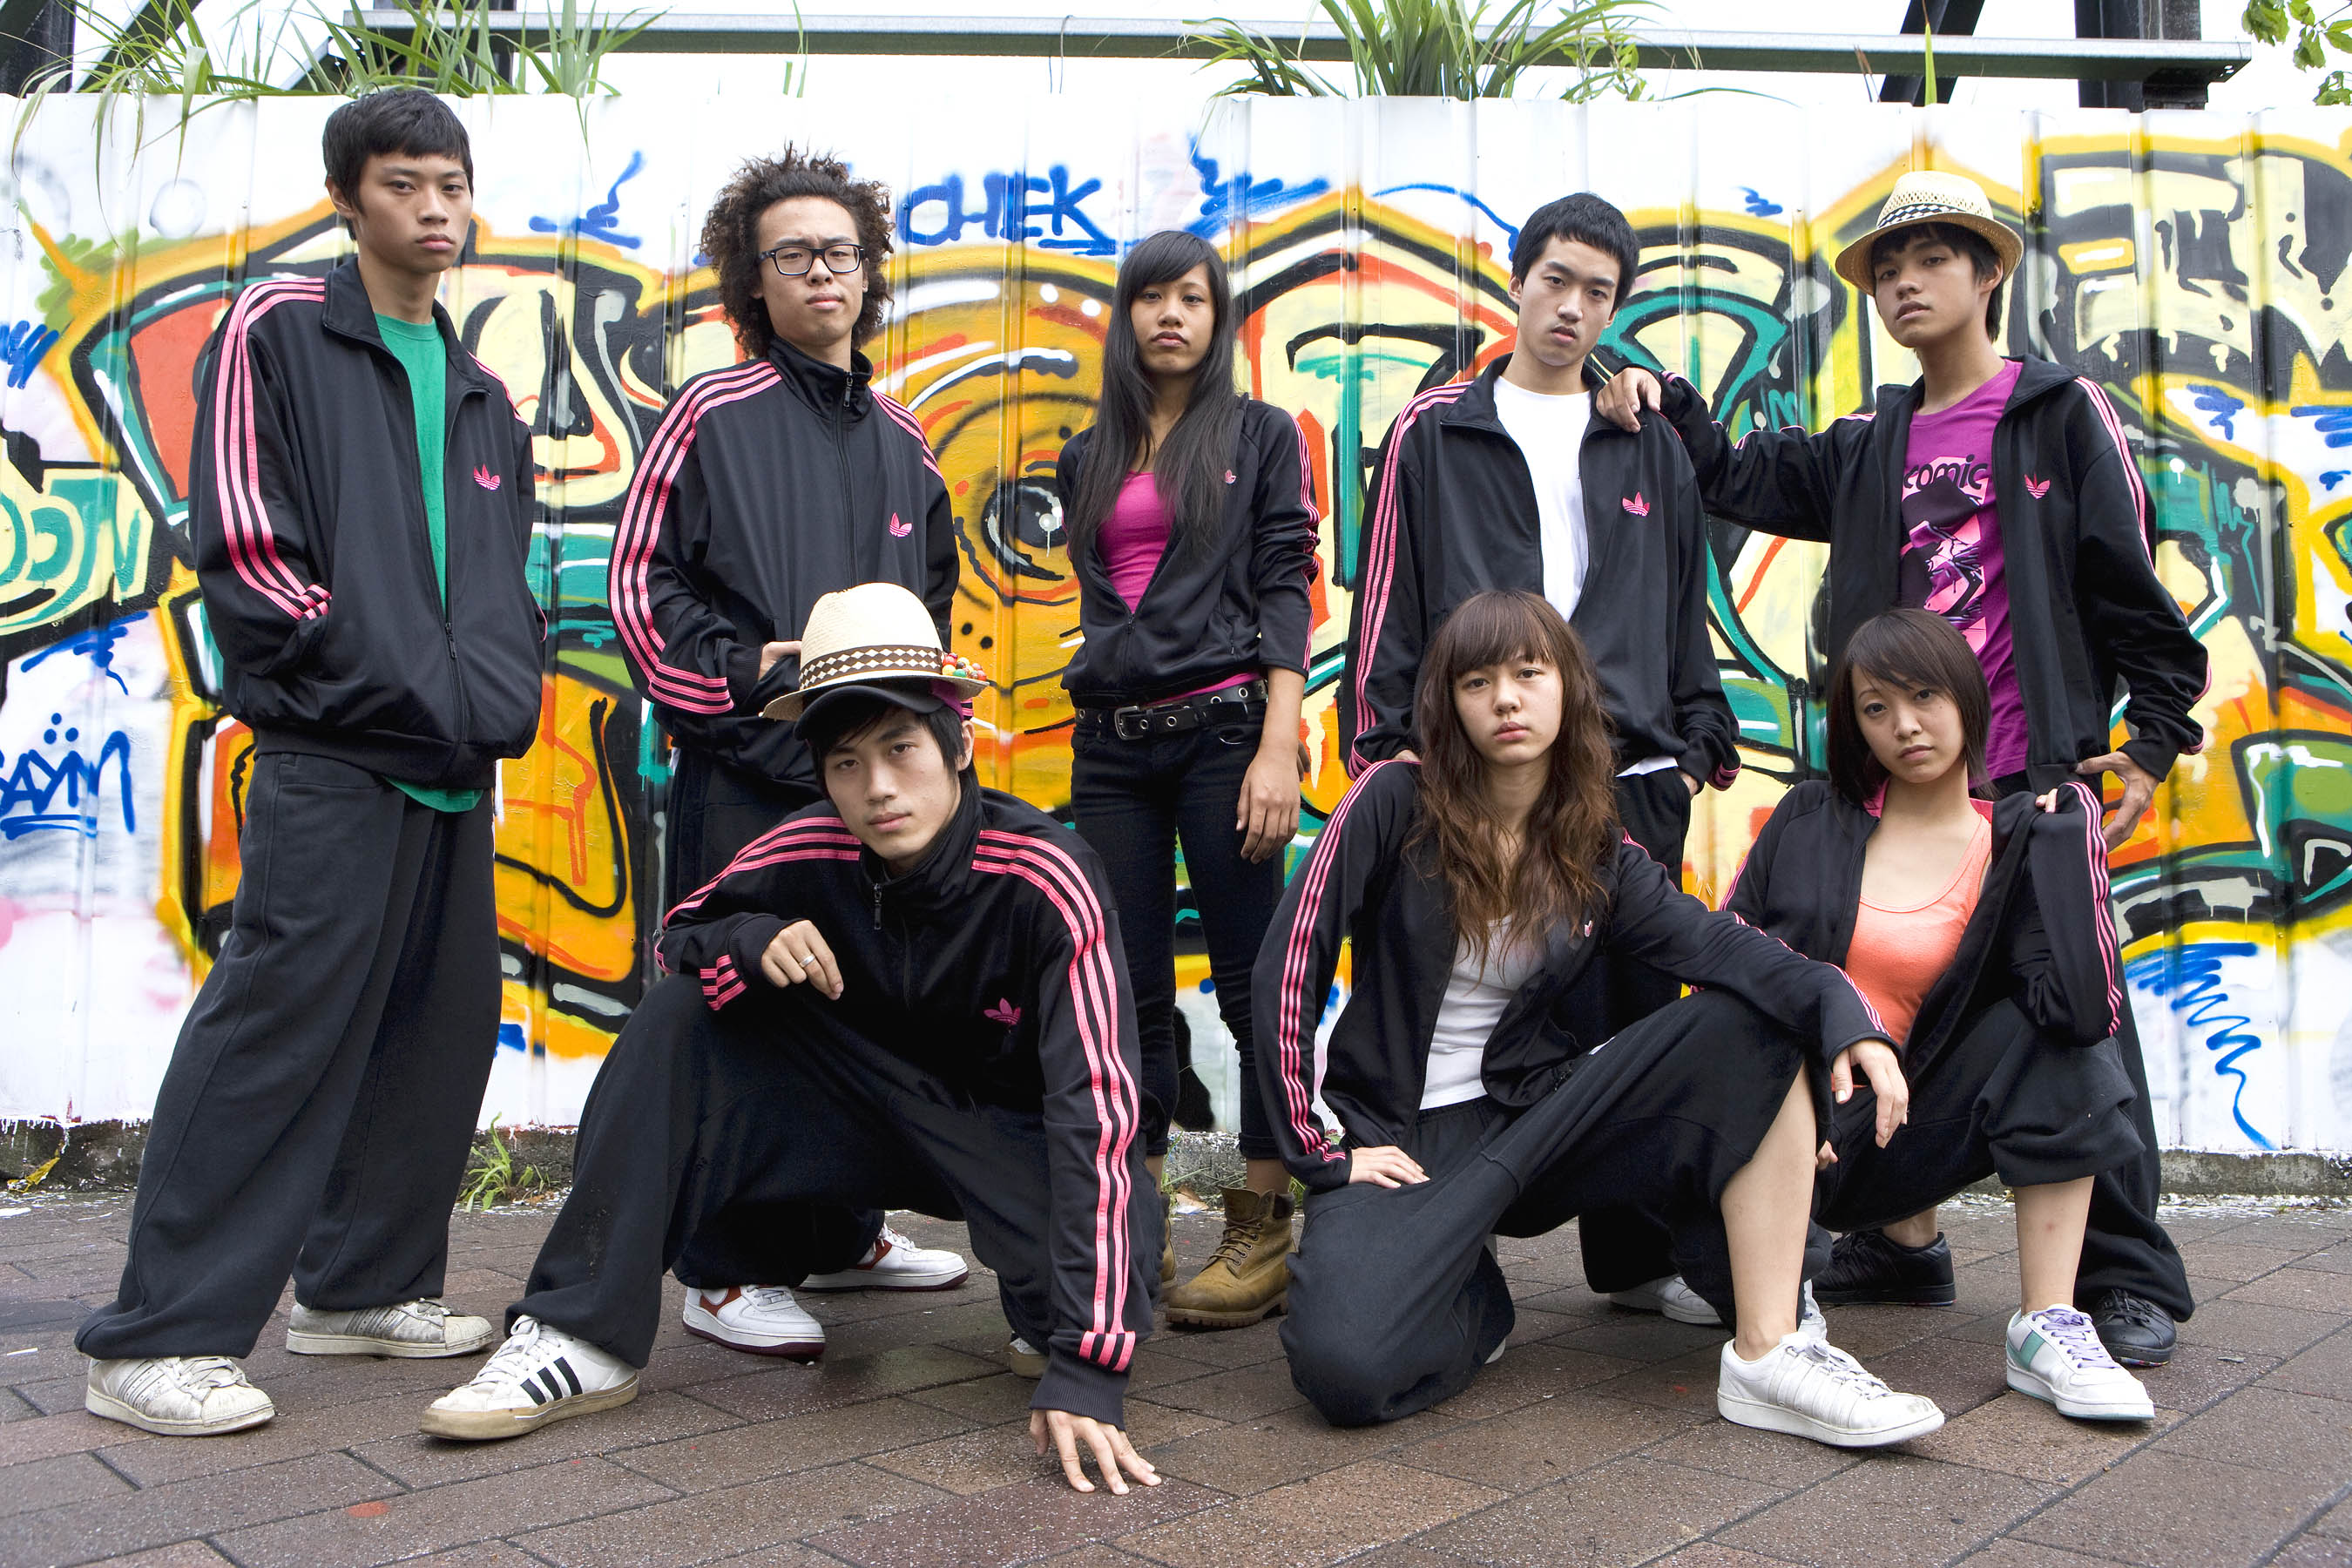 A 17-year-old troupe of street dance, Undergradu-Eight, pose in front of a graffiti wall. (Photo Courtesy of Flash Forward Entertainment)